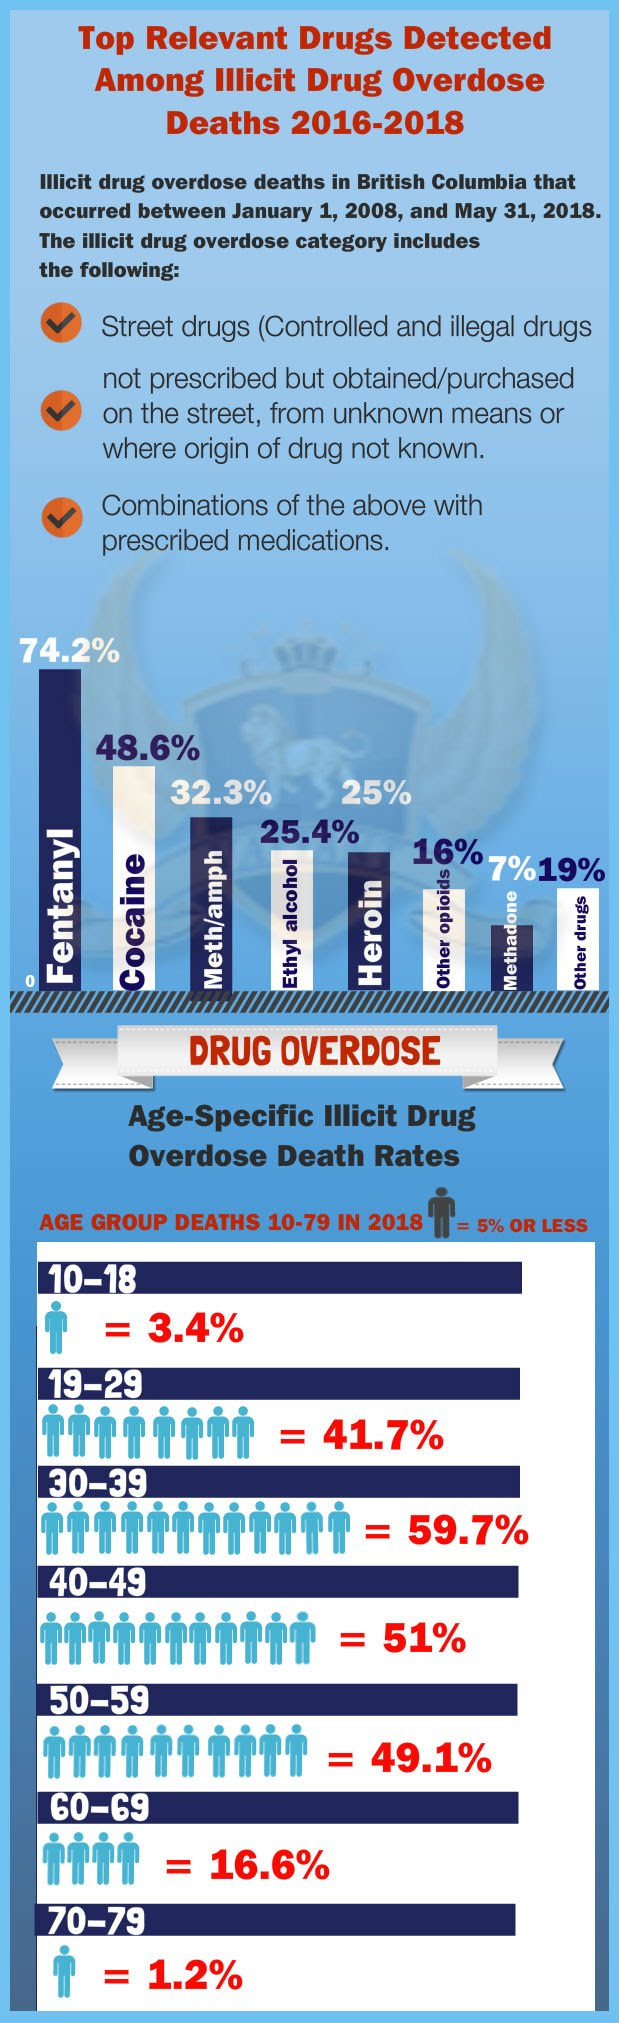 Top Drugs Detected among Overdose Deaths